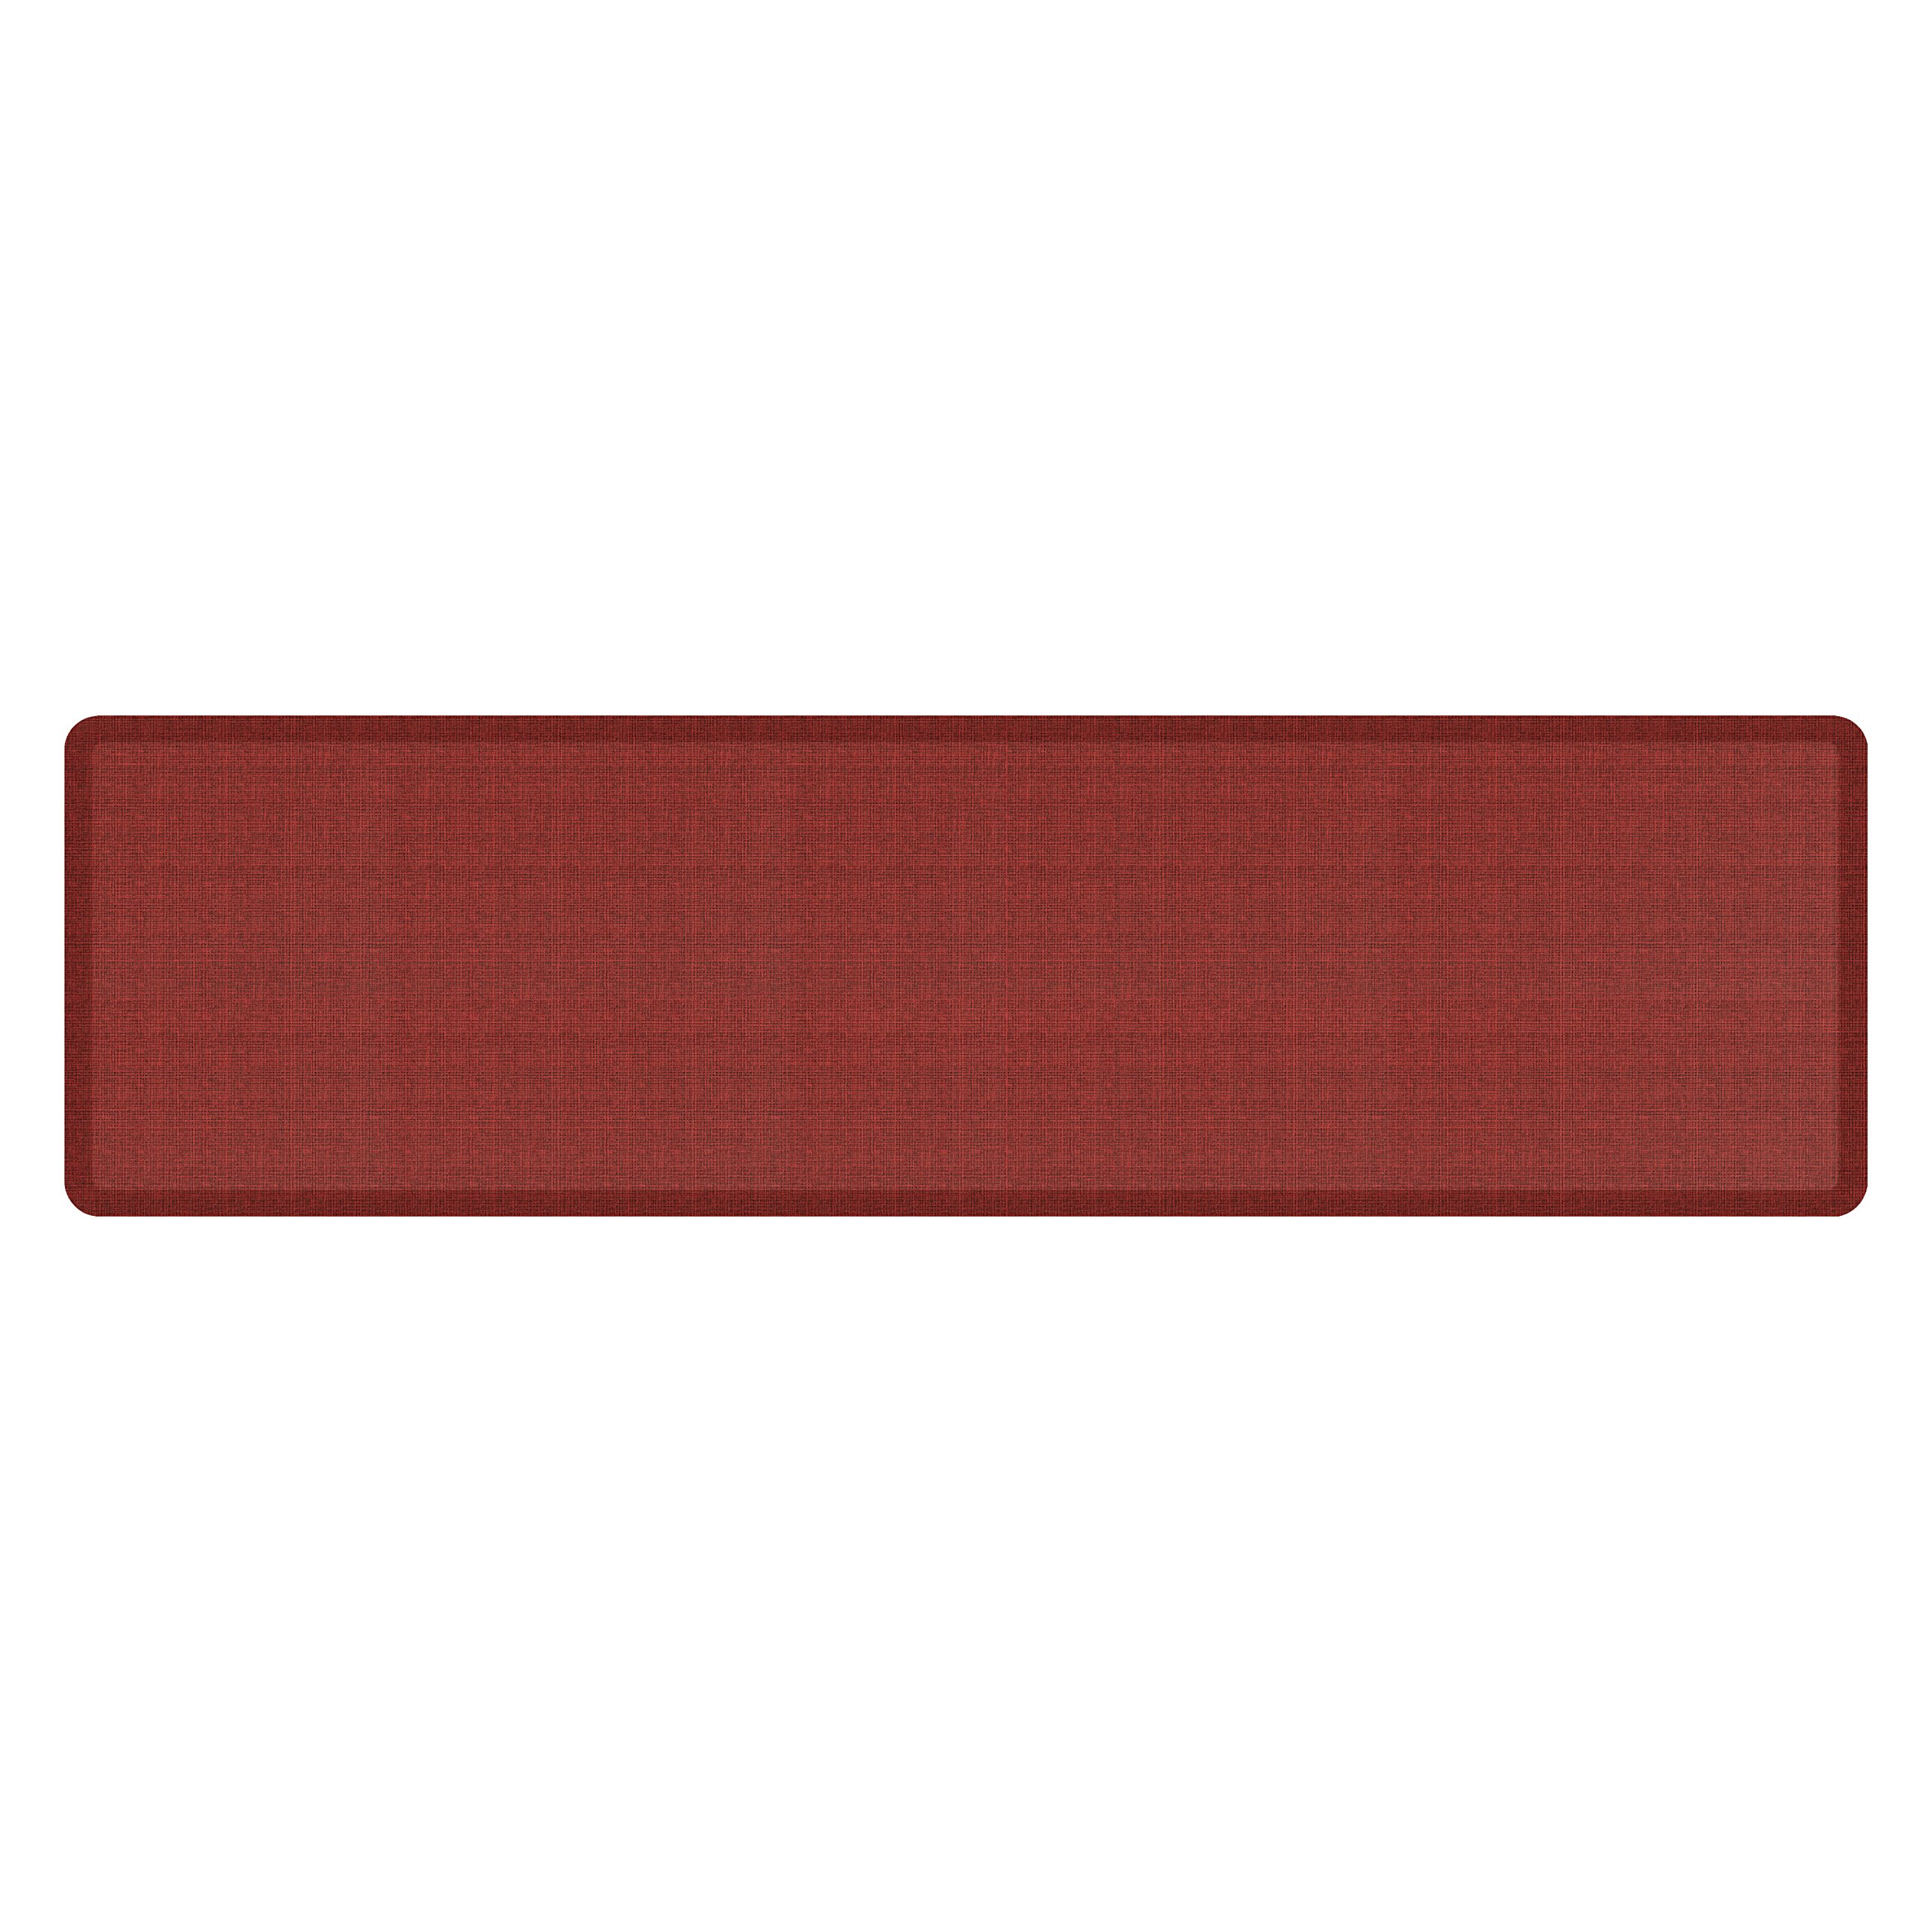 """NewLife by GelPro Anti-Fatigue Designer Comfort Kitchen Floor Mat, 30x108'', Tweed Barn Red Stain Resistant Surface with 3/4"""" Thick Ergo-foam Core for Health and Wellness"""